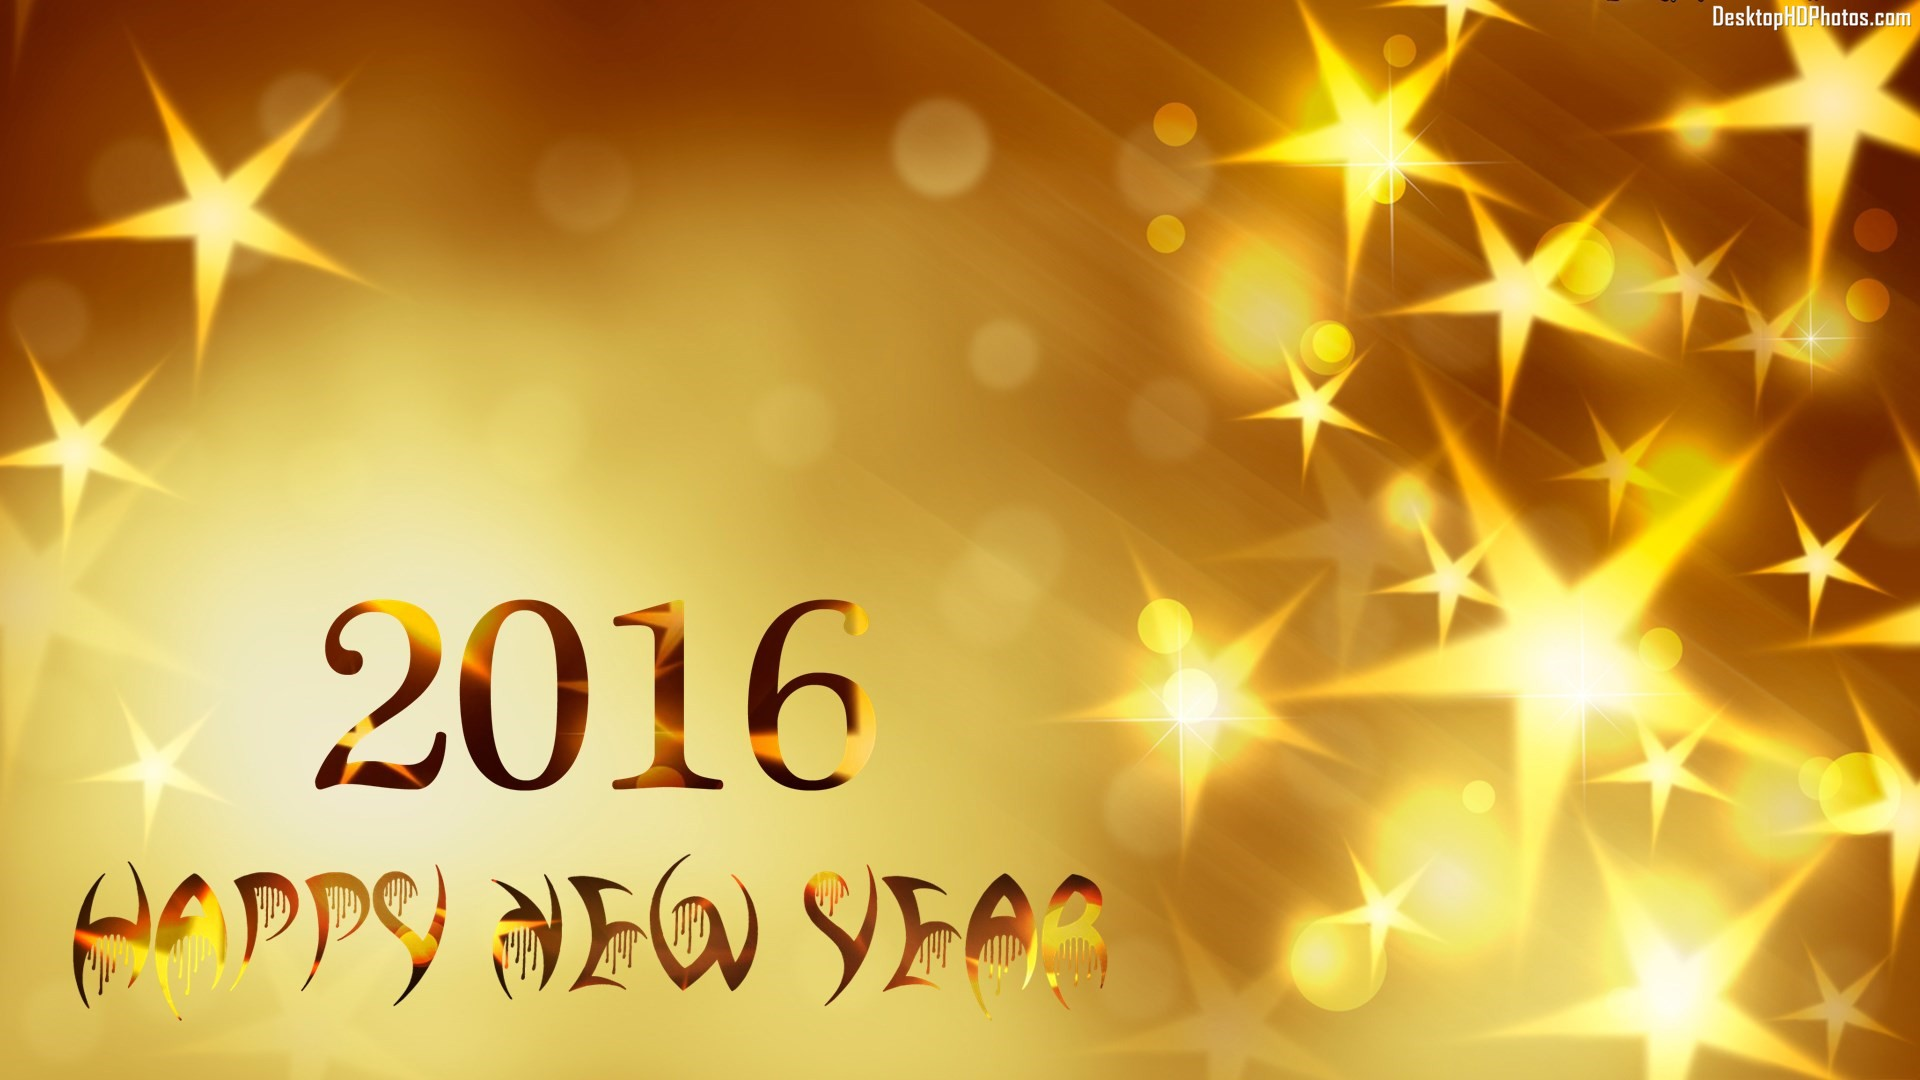 Download-Free-Happy-New-Year-Photos-http-www-welcomehappynewyear-com-download-free-happy-new-wallpaper-wp3804706